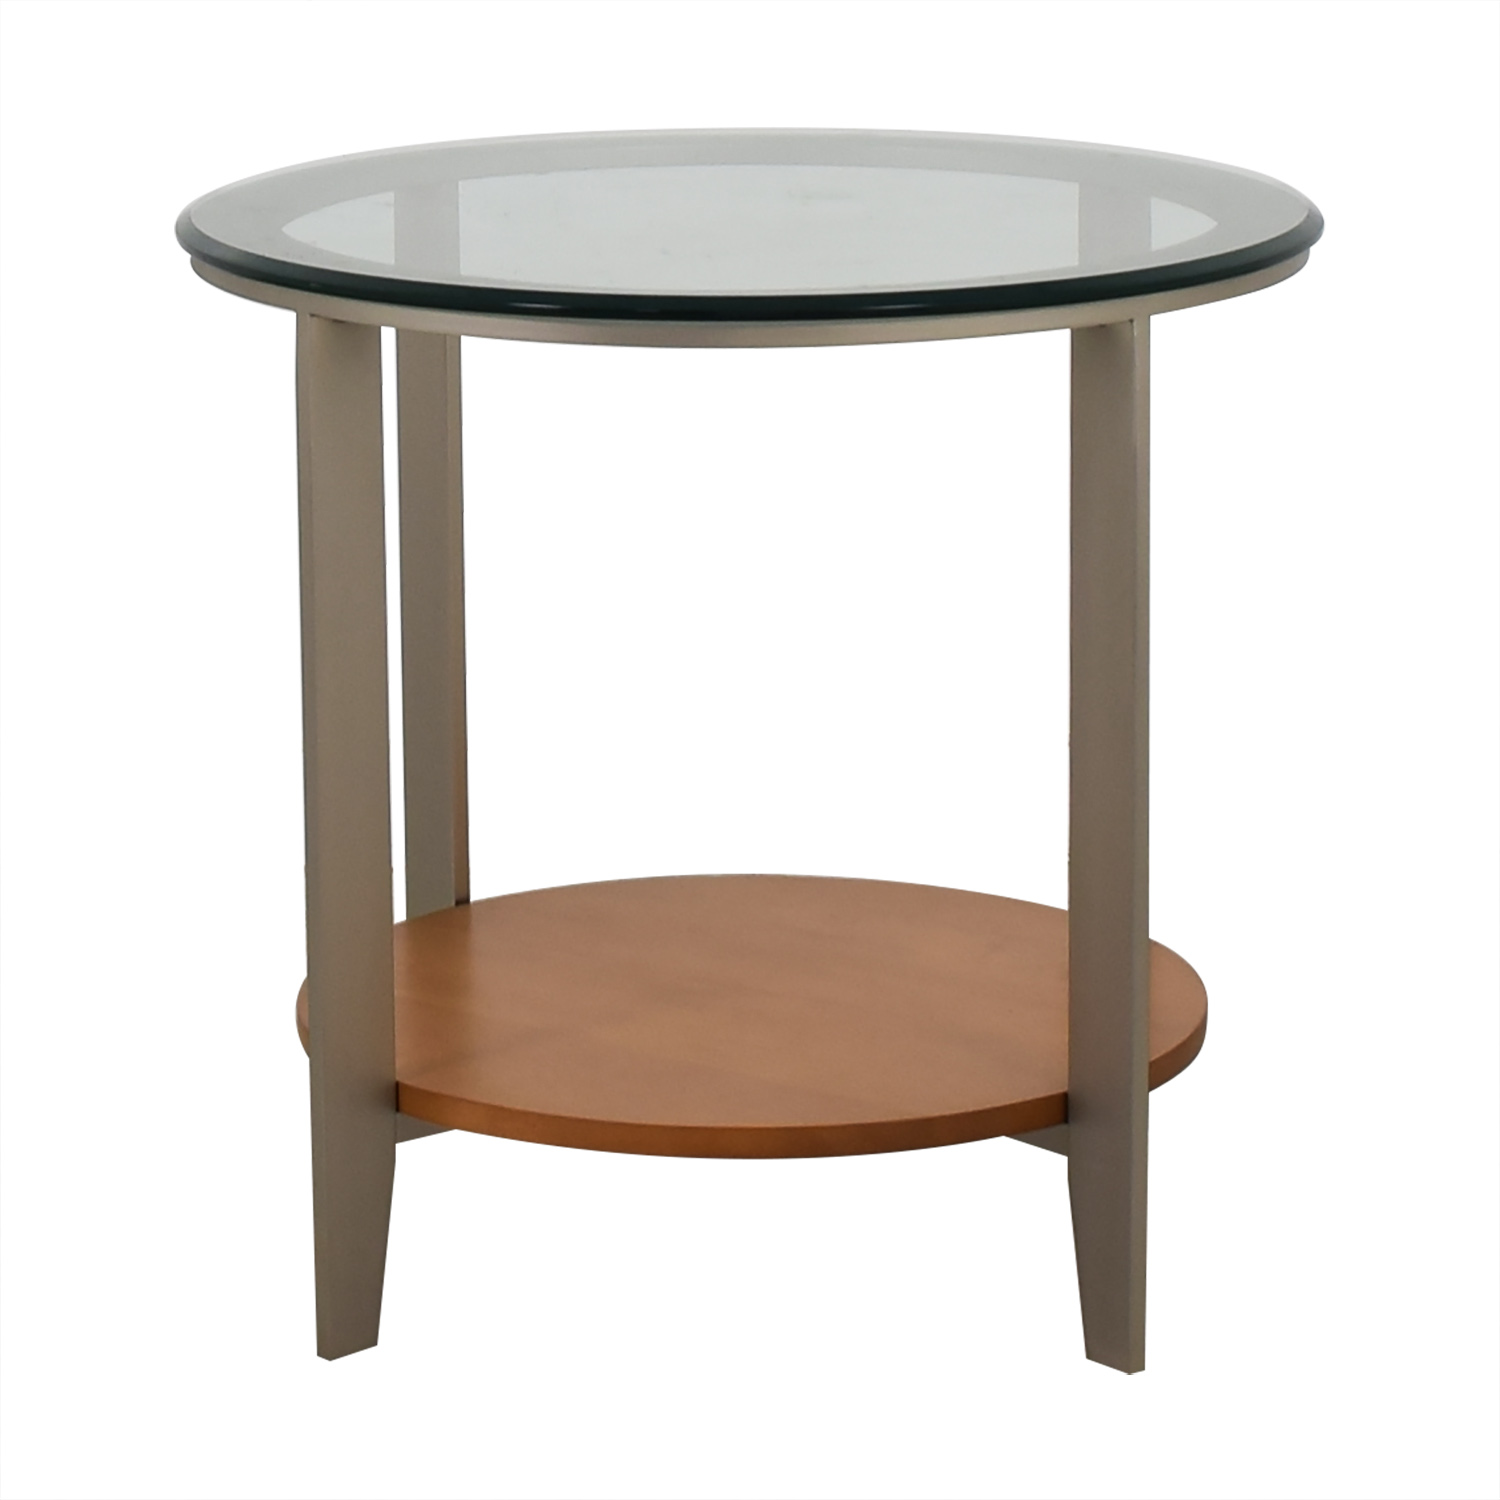 Ethan Allen Ethan Allen Round Glass and Wood End Table used